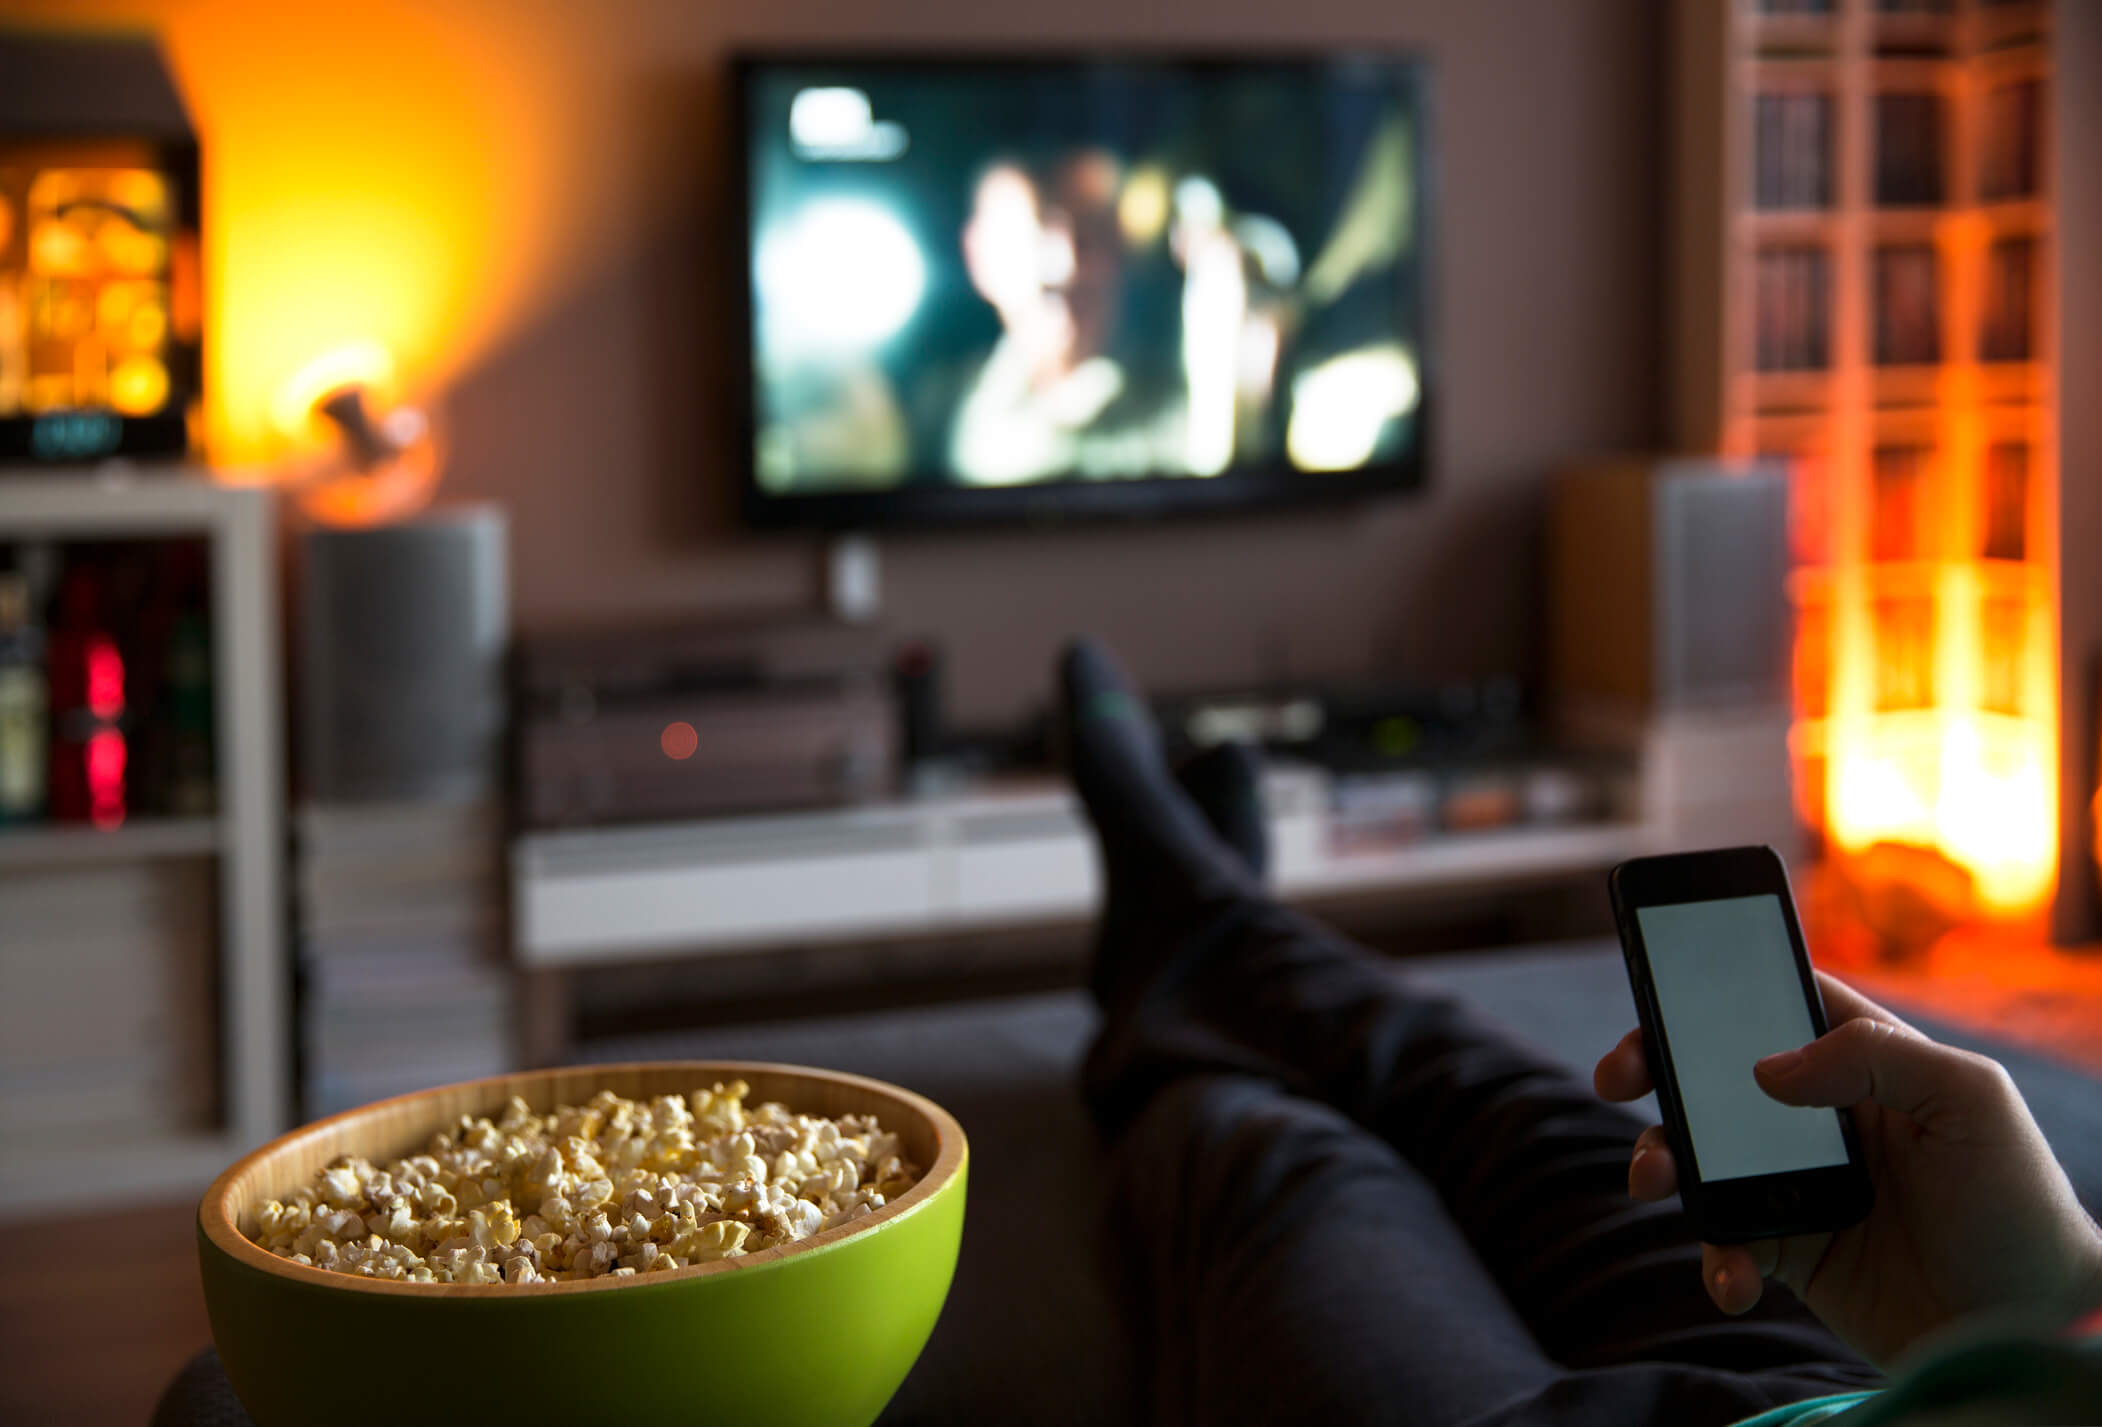 Man watching TV on living room couch eating popcorn